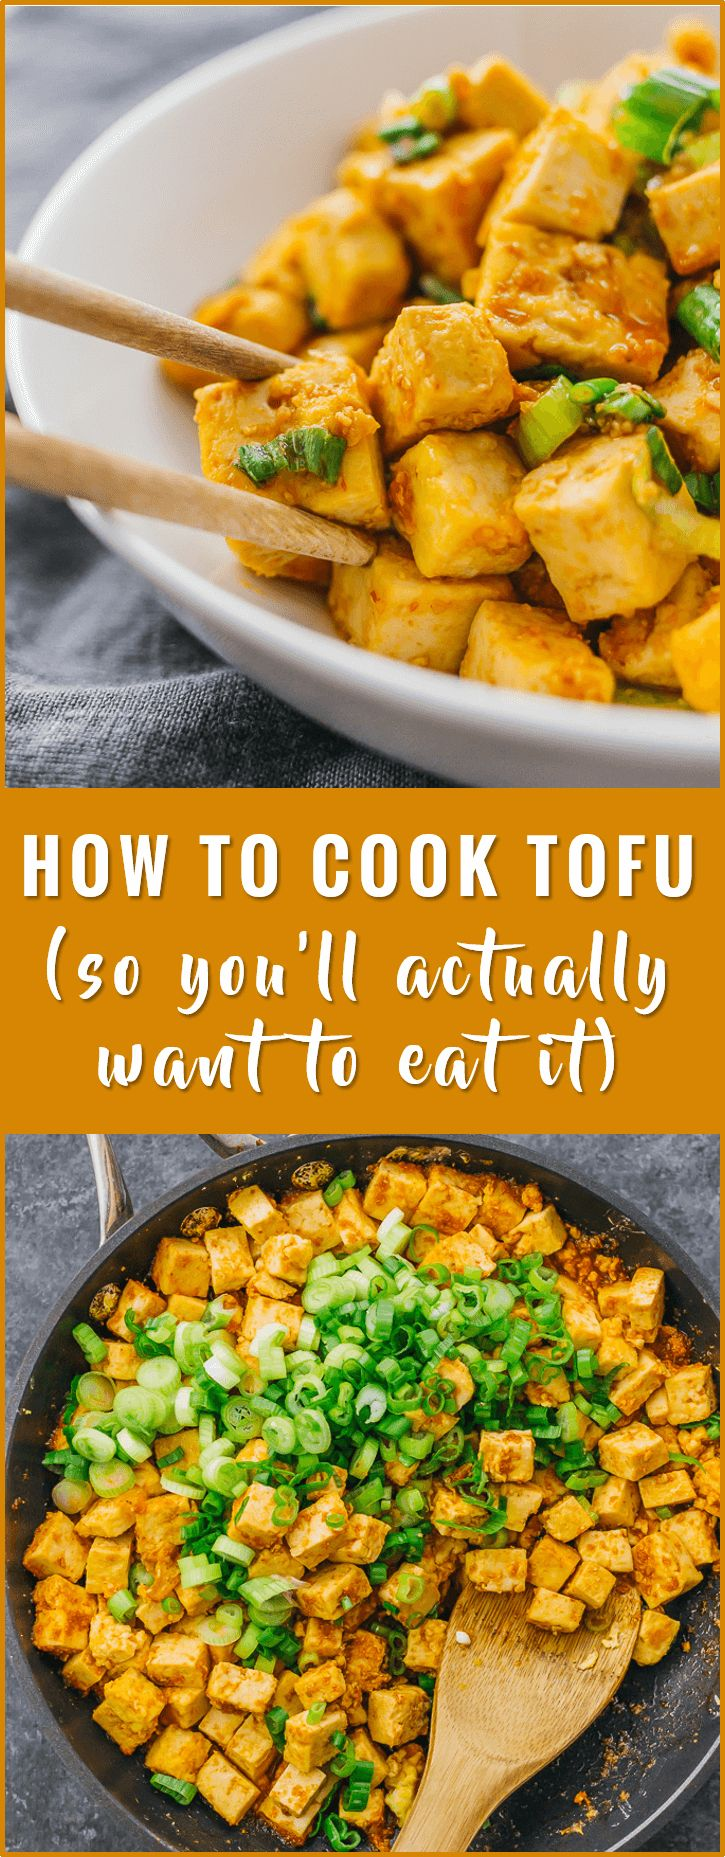 Learn how to cook tofu in a pan with a delicious sauce using this very simple recipe. vegetarian, baked, healthy, scramble, crispy, fried, stir fry, marinade, tacos, nuggets, bbq, spicy, in oven via @savory_tooth